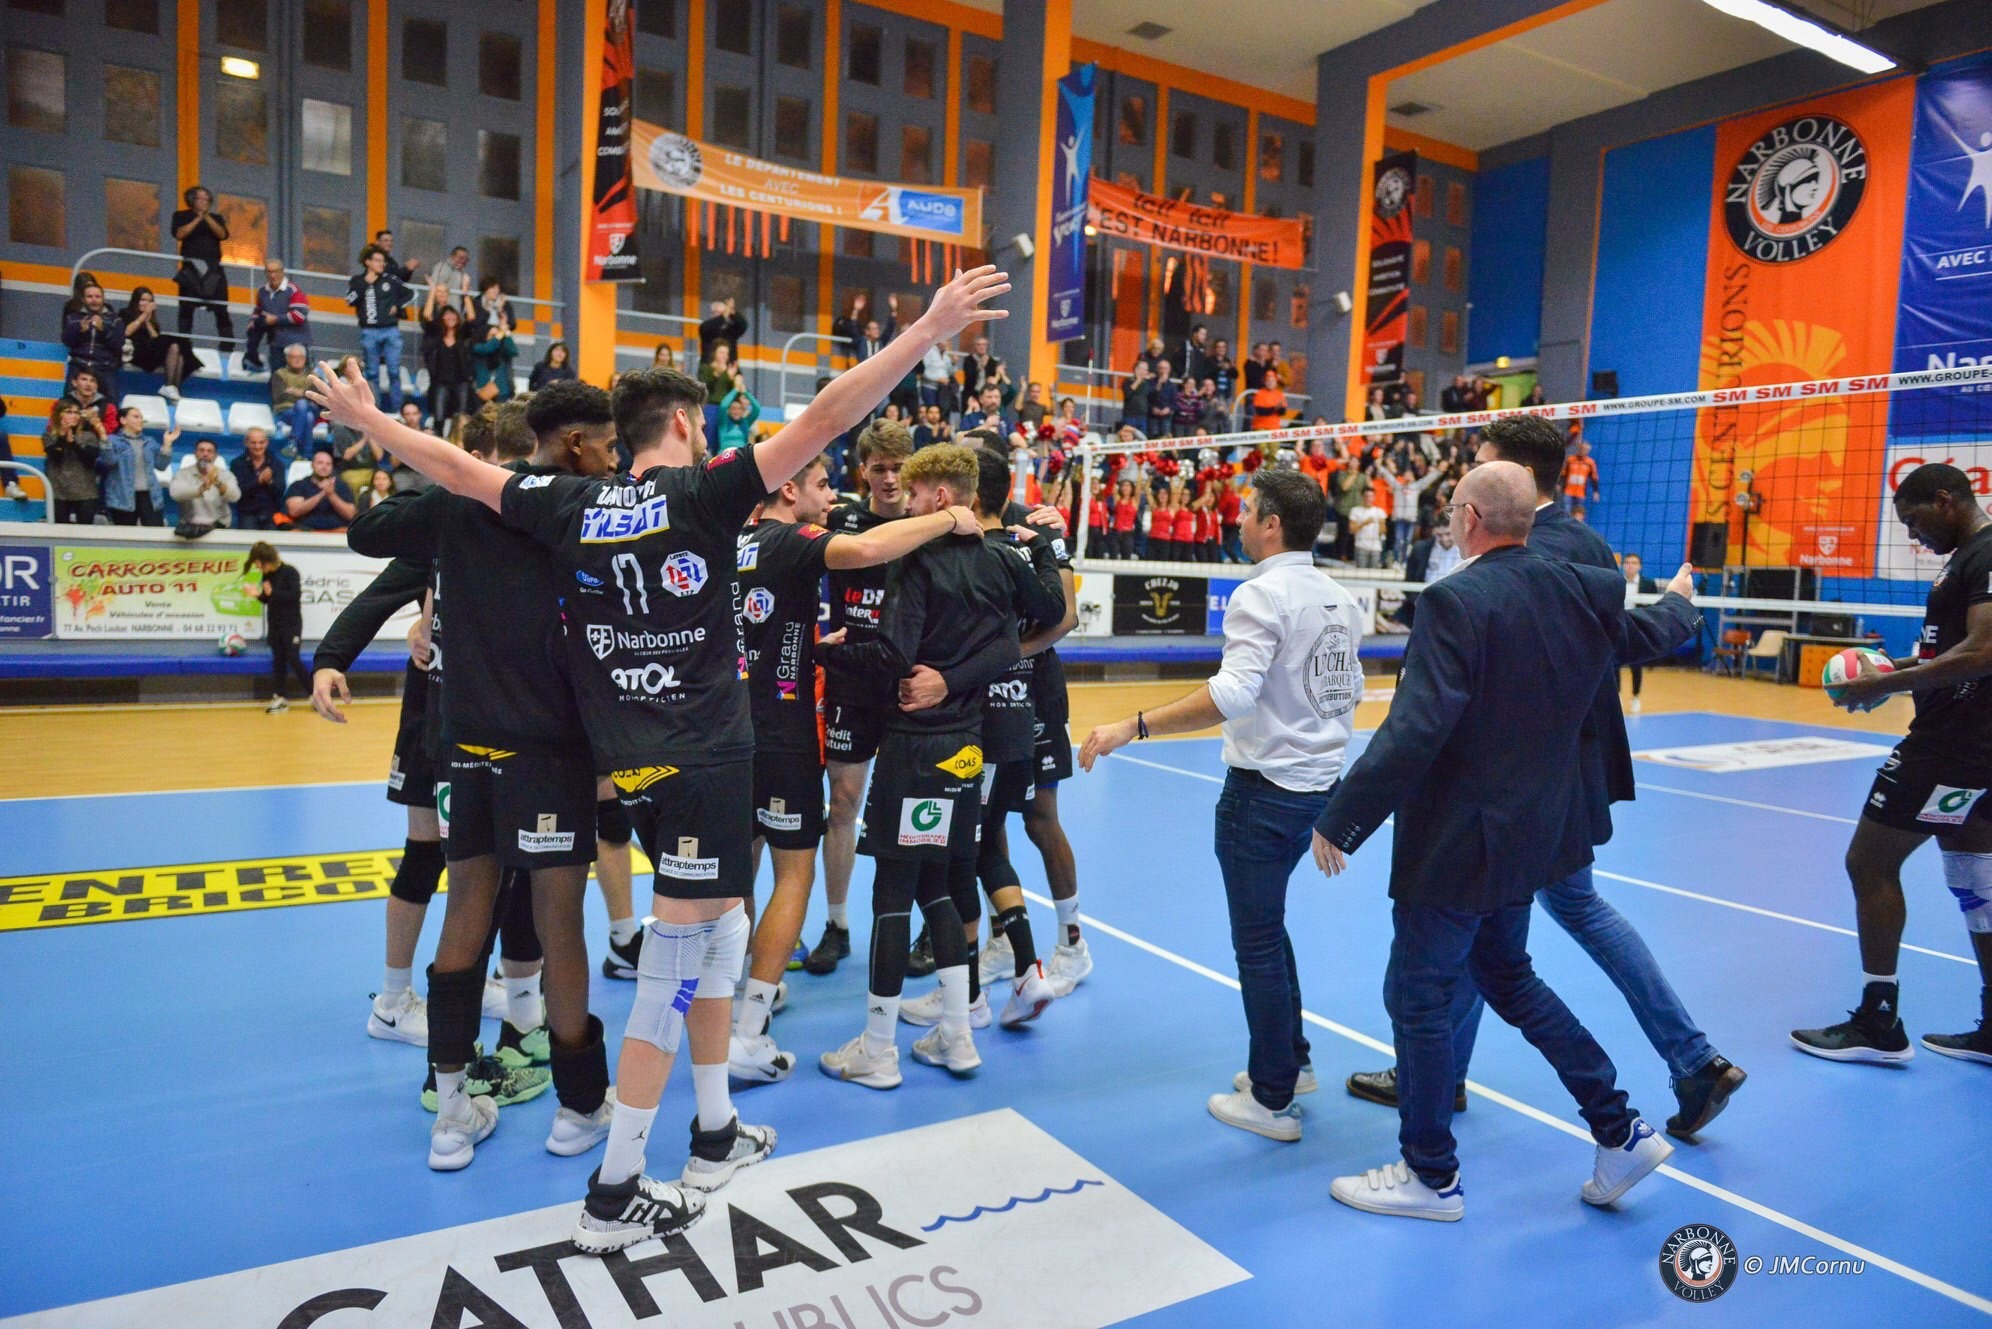 France: Narbonne wins vs. Sete in advance of Round 12